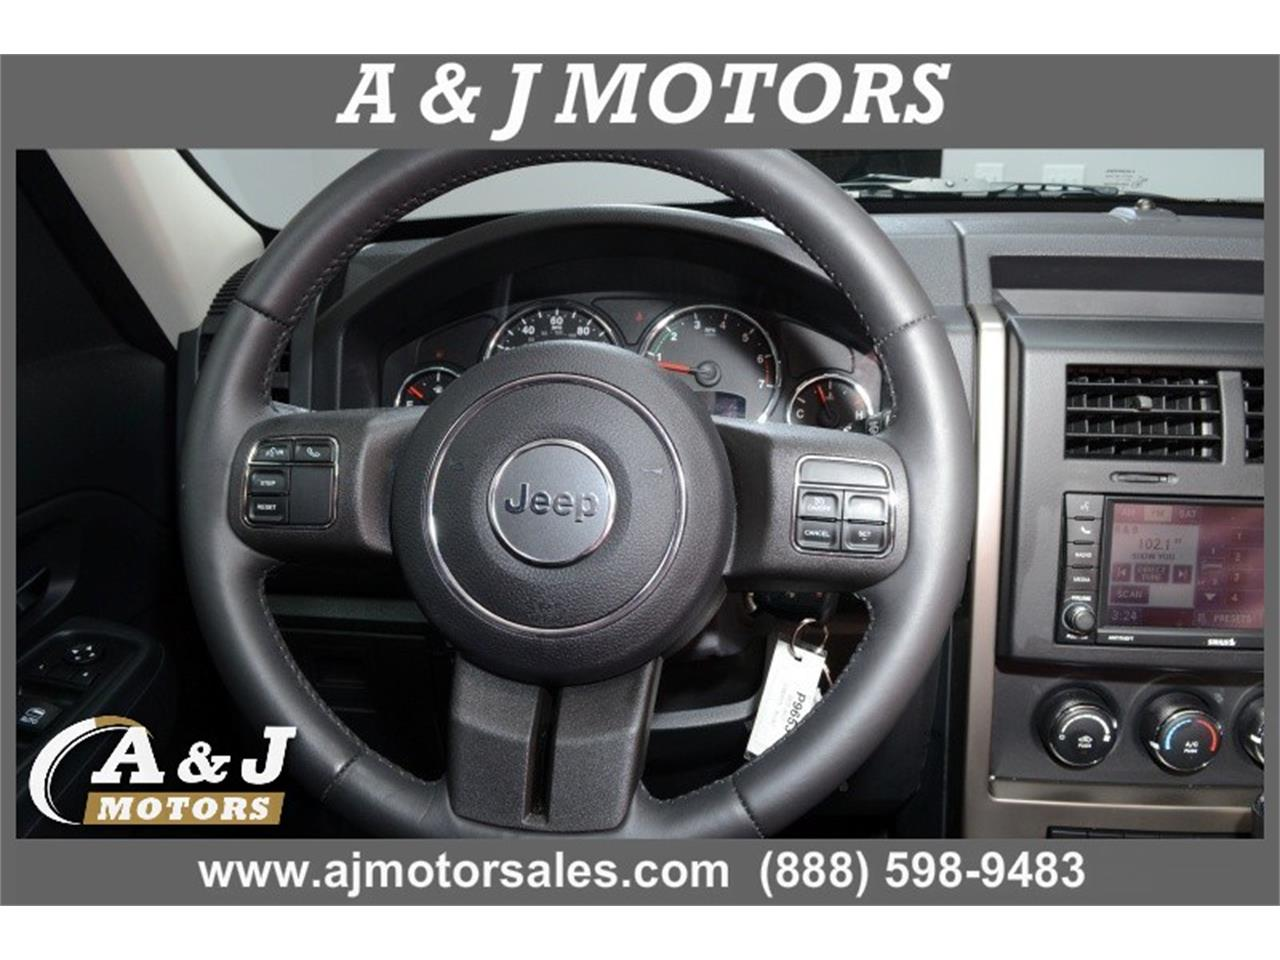 Large Picture of 2012 Jeep Liberty located in Missouri Offered by A & J Motors - MOD3